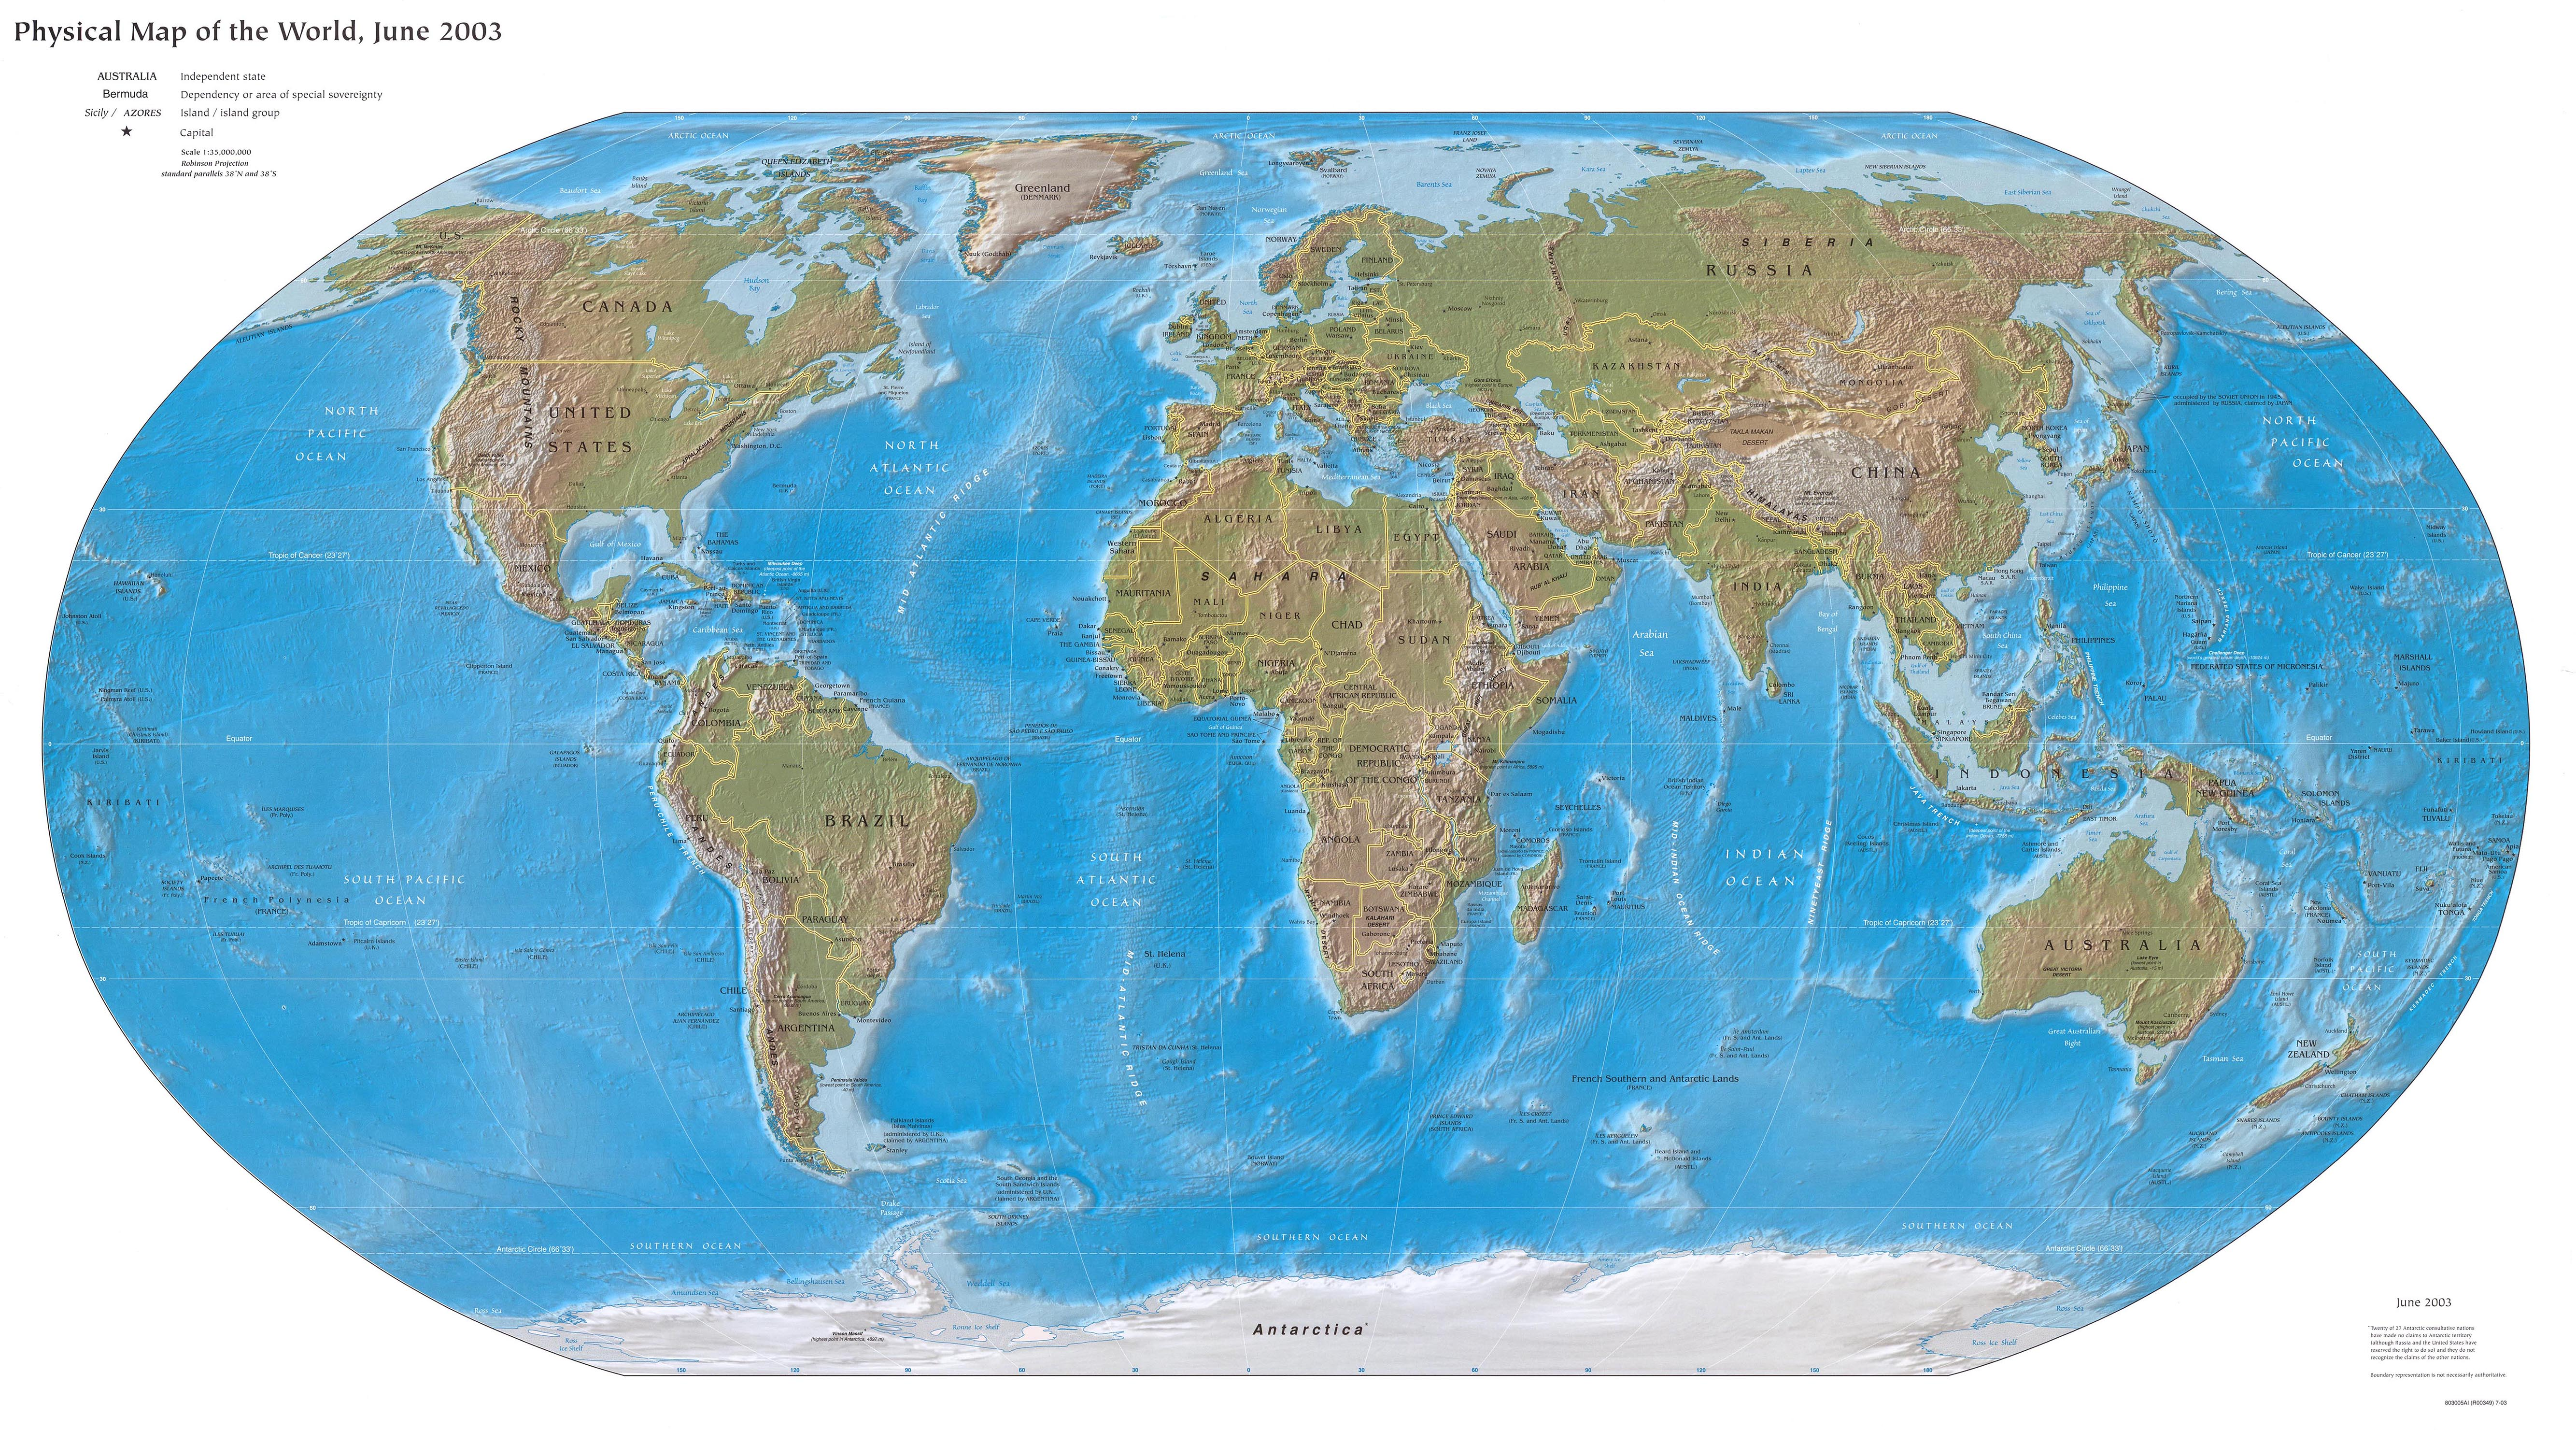 World physical map 2003 Full size